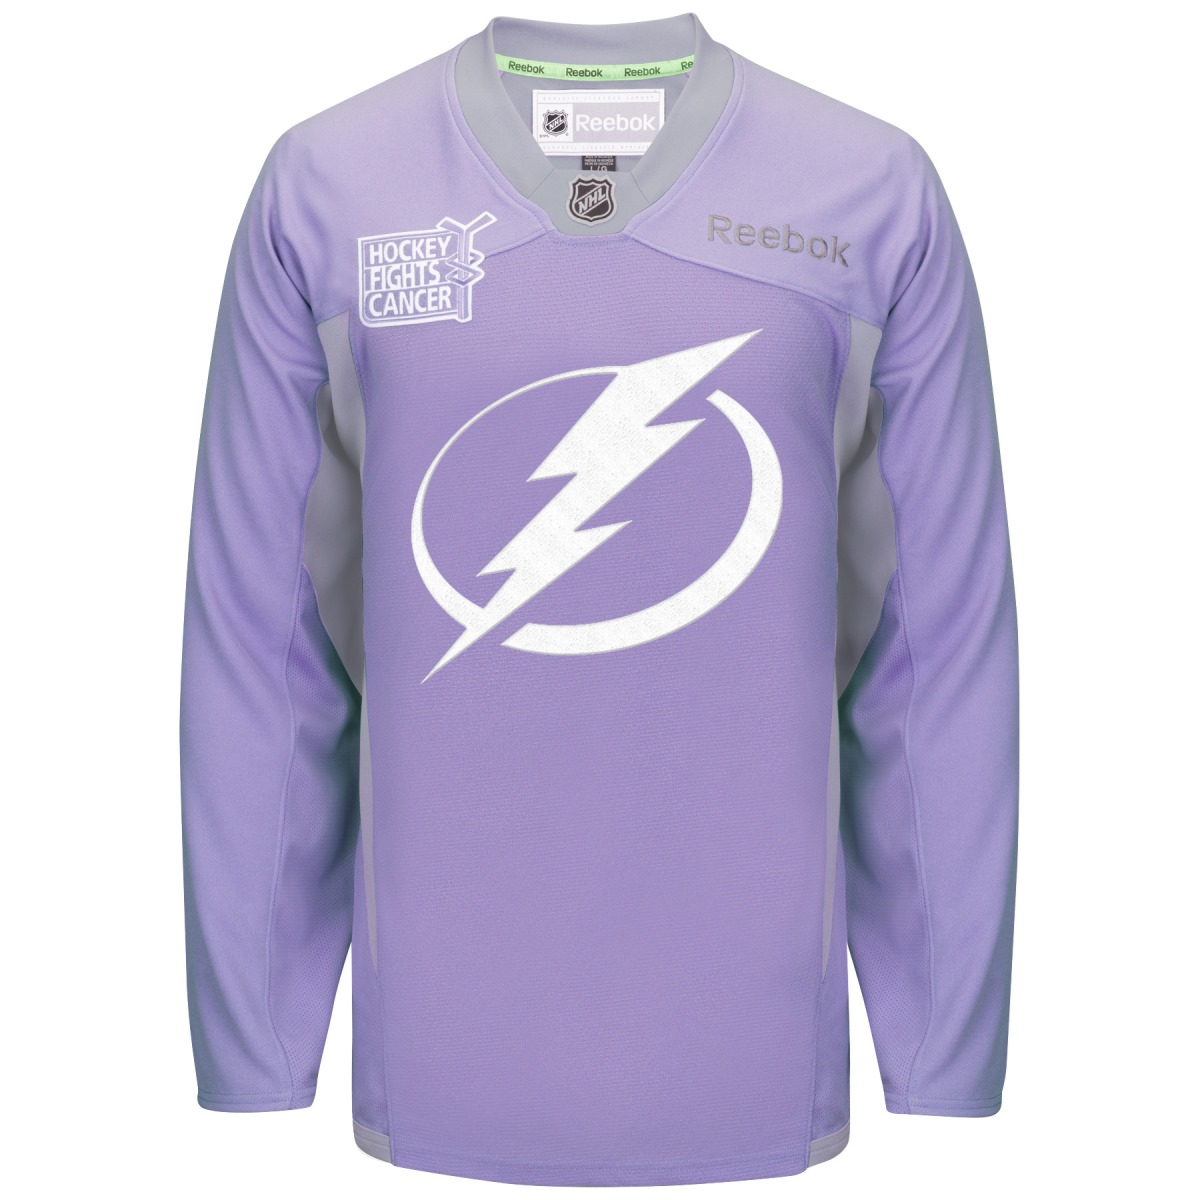 Tampa Bay Lightning Reebok NHL Hockey Fights Cancer Practice Men's Jersey